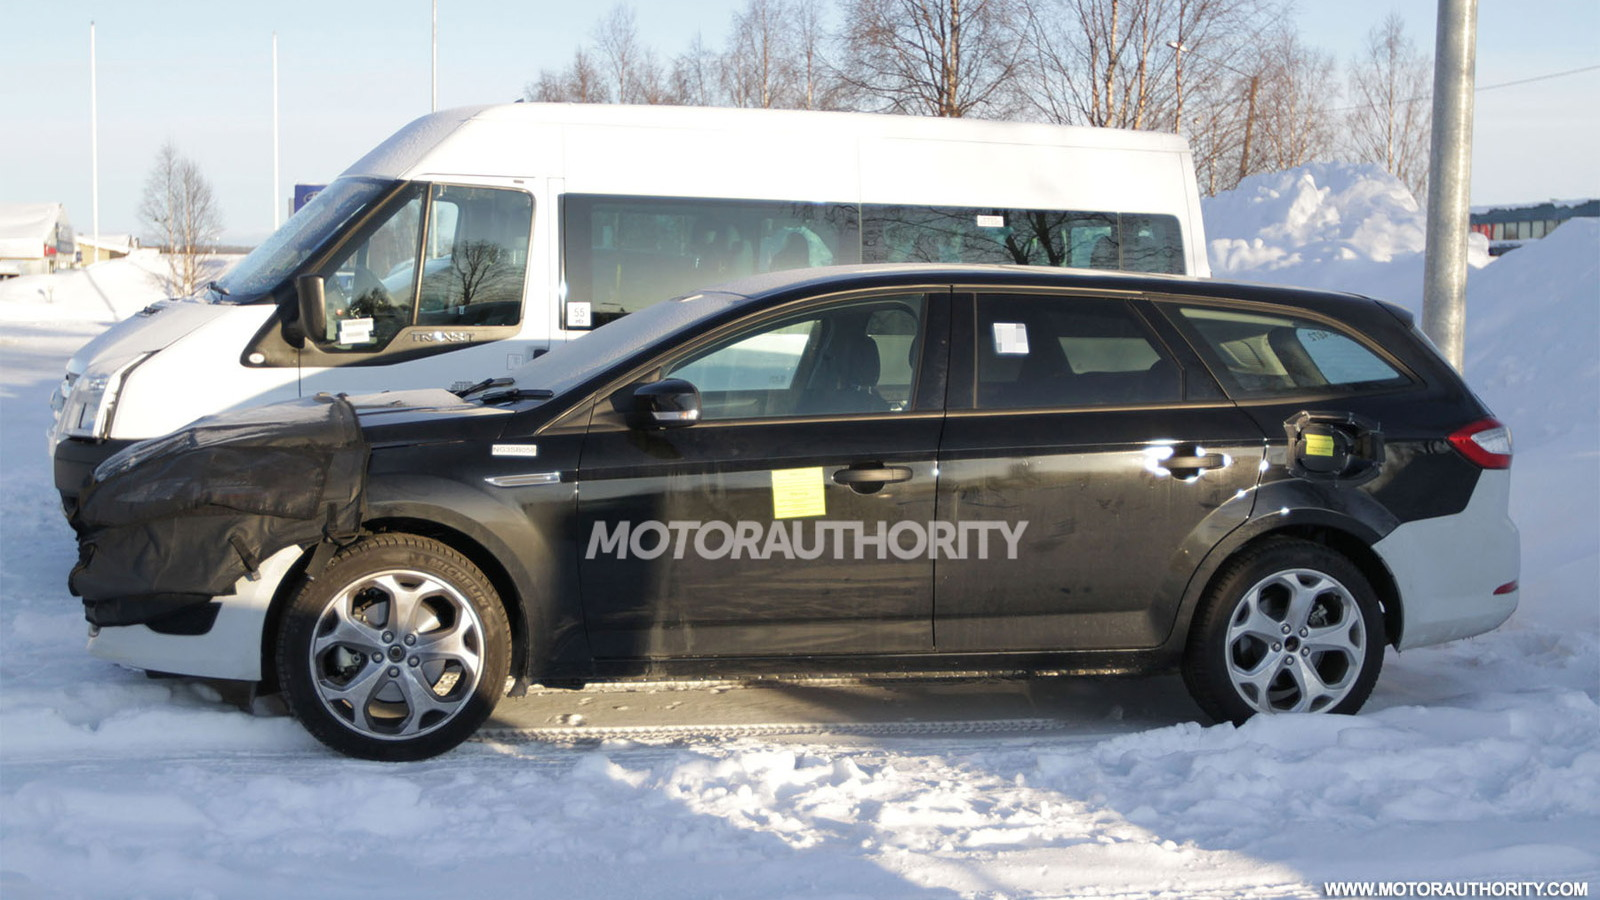 2013 Ford Mondeo Turnier Wagon test-mule spy shots